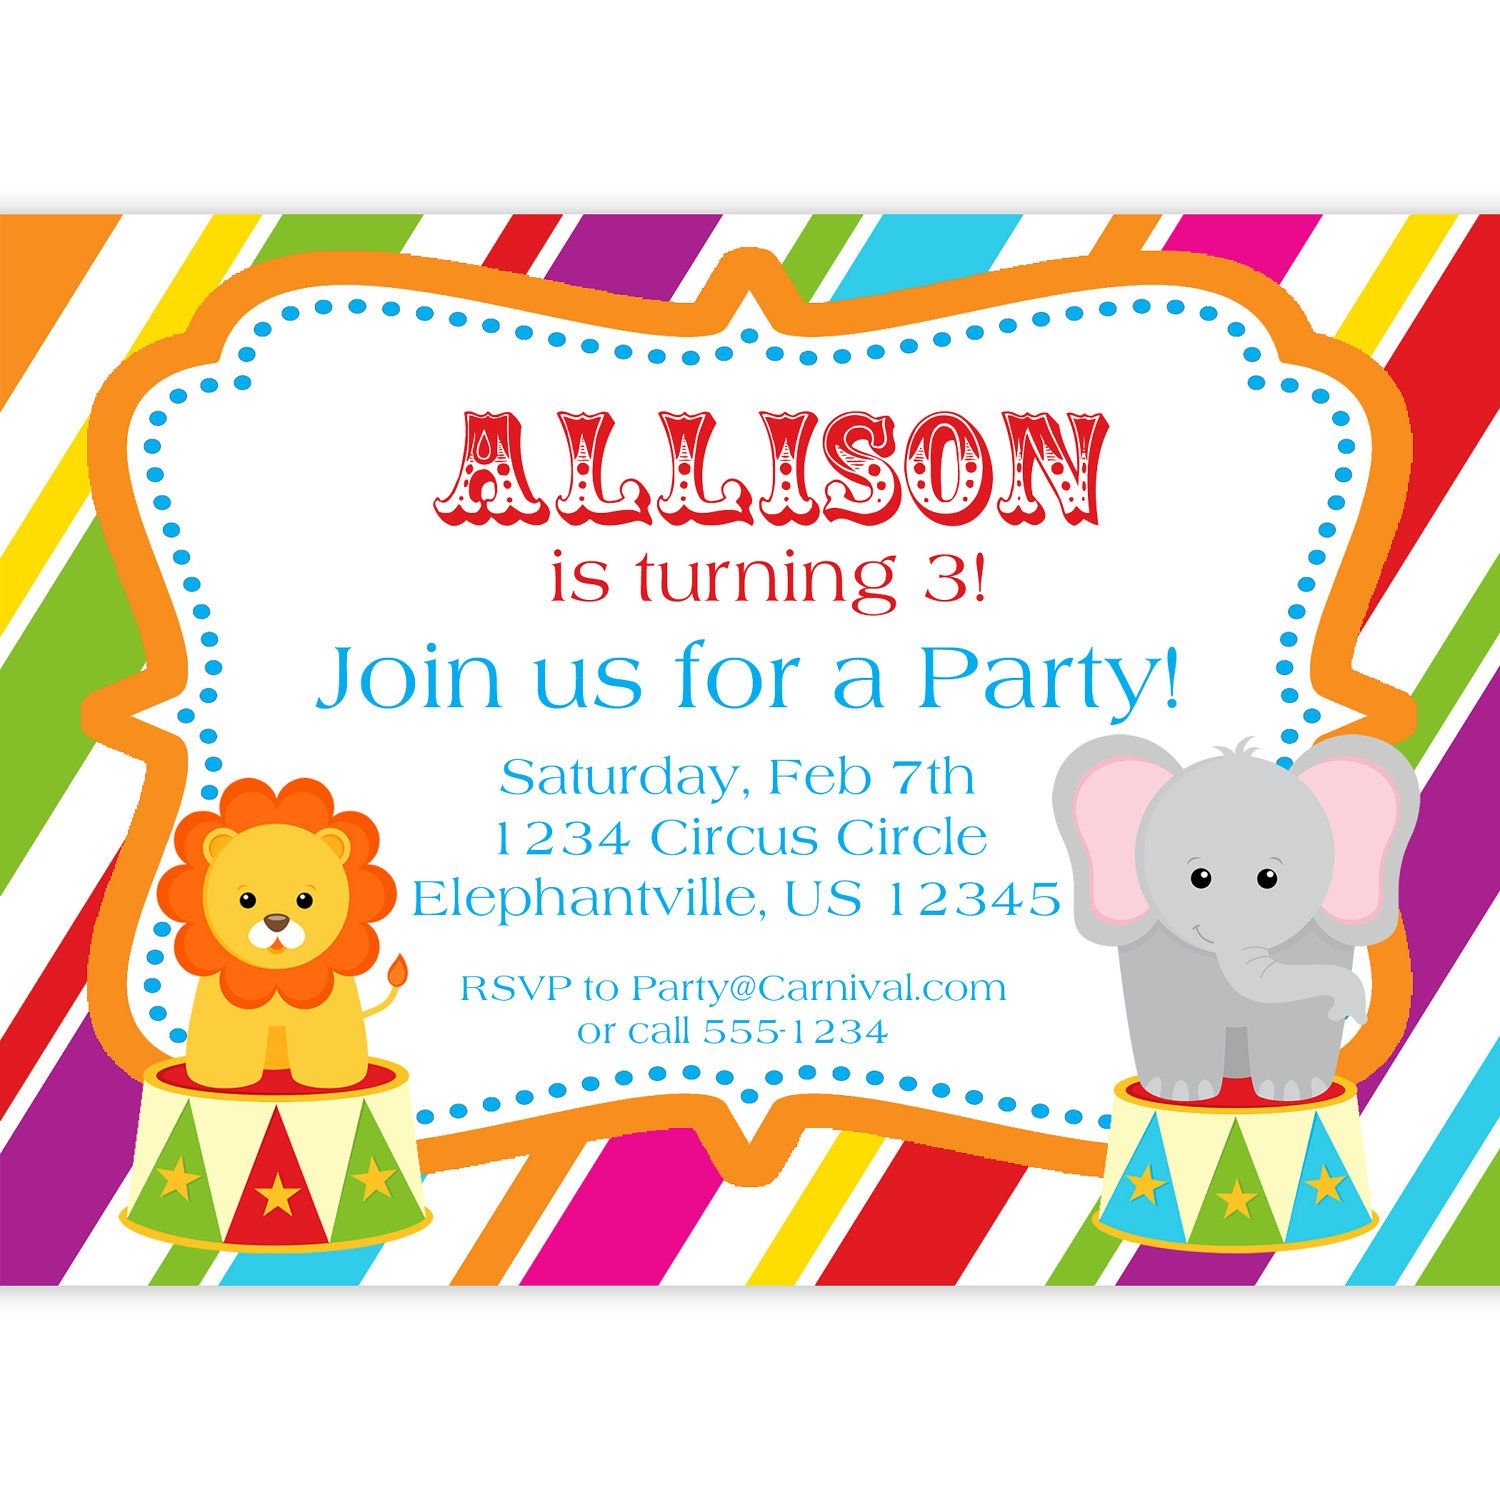 Get Art Birthday Party Invitations For Your Kids Free Printable